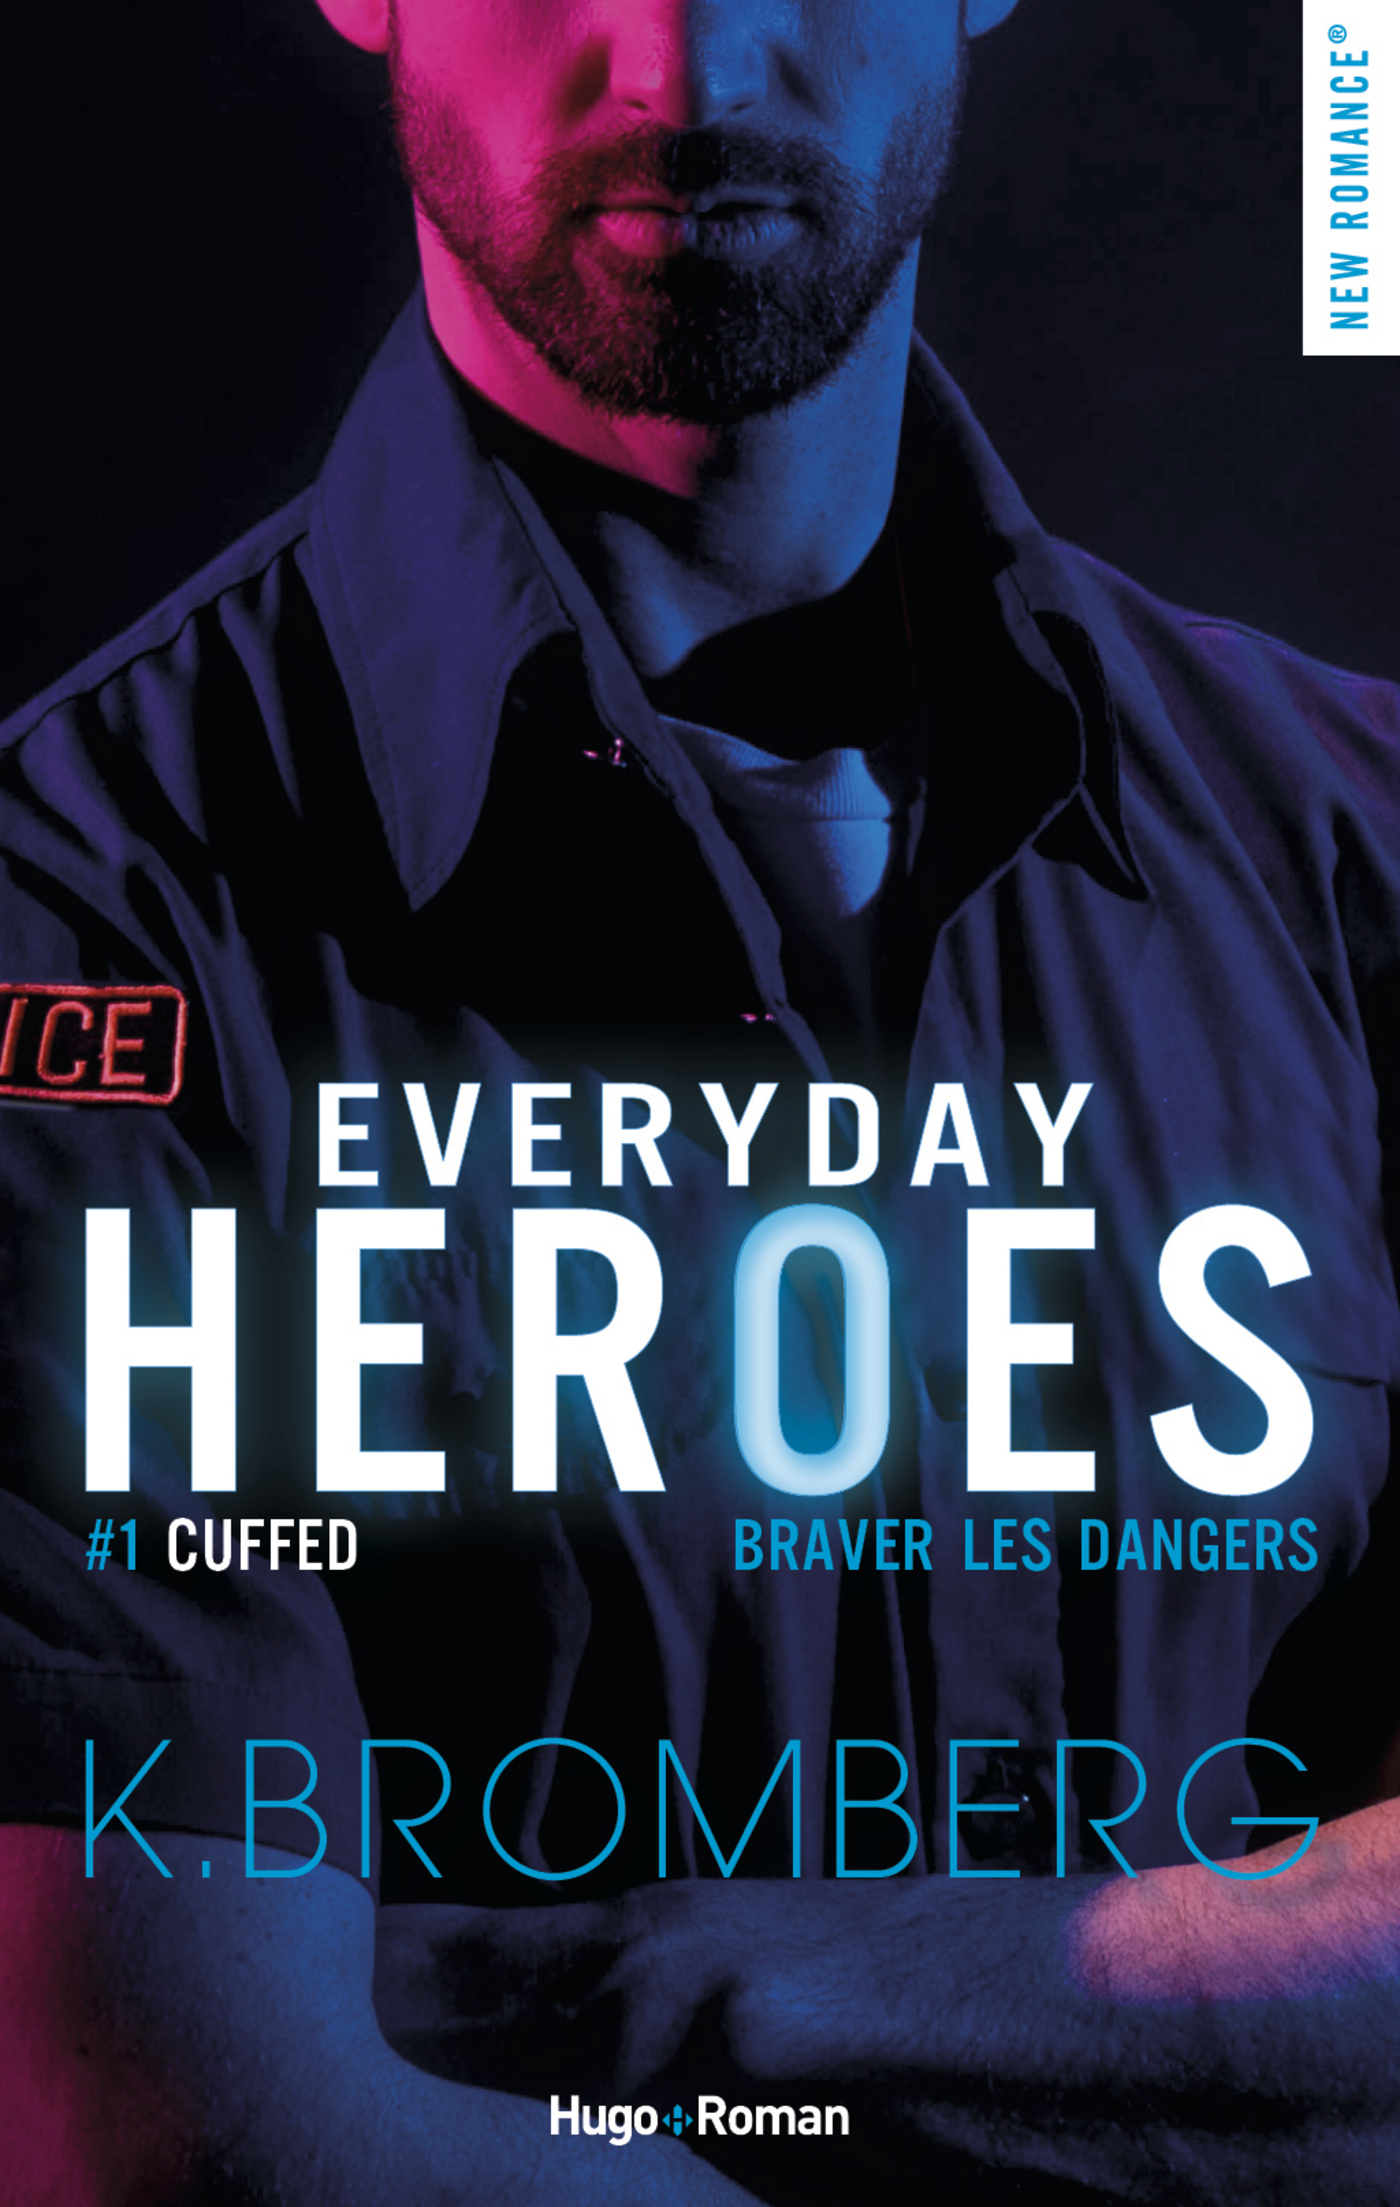 Everyday heroes - tome 1 Cuffed épisode 3